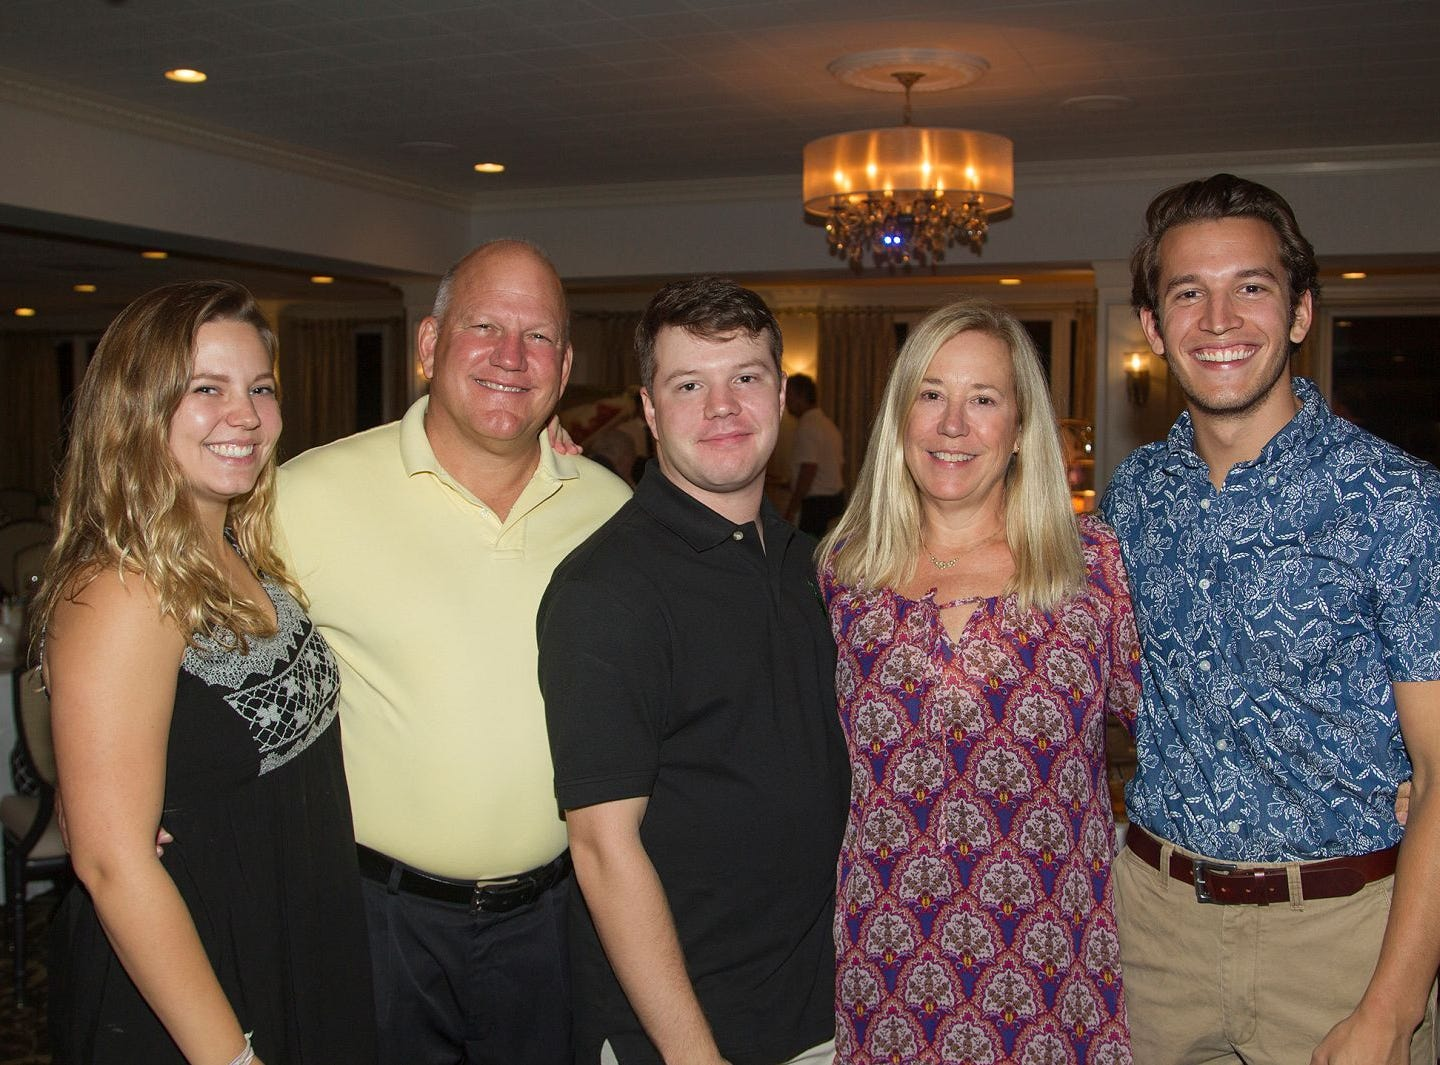 Kuiken Family.  Emily, Lou, Daniel, Julie, Chris. Ken's Krew Golf Outing at White Beeches Country Club in Haworth. Ken's Krew provides vocational training and job placement services for young adults with intellectual and developmental disabilities. 10/09/2018